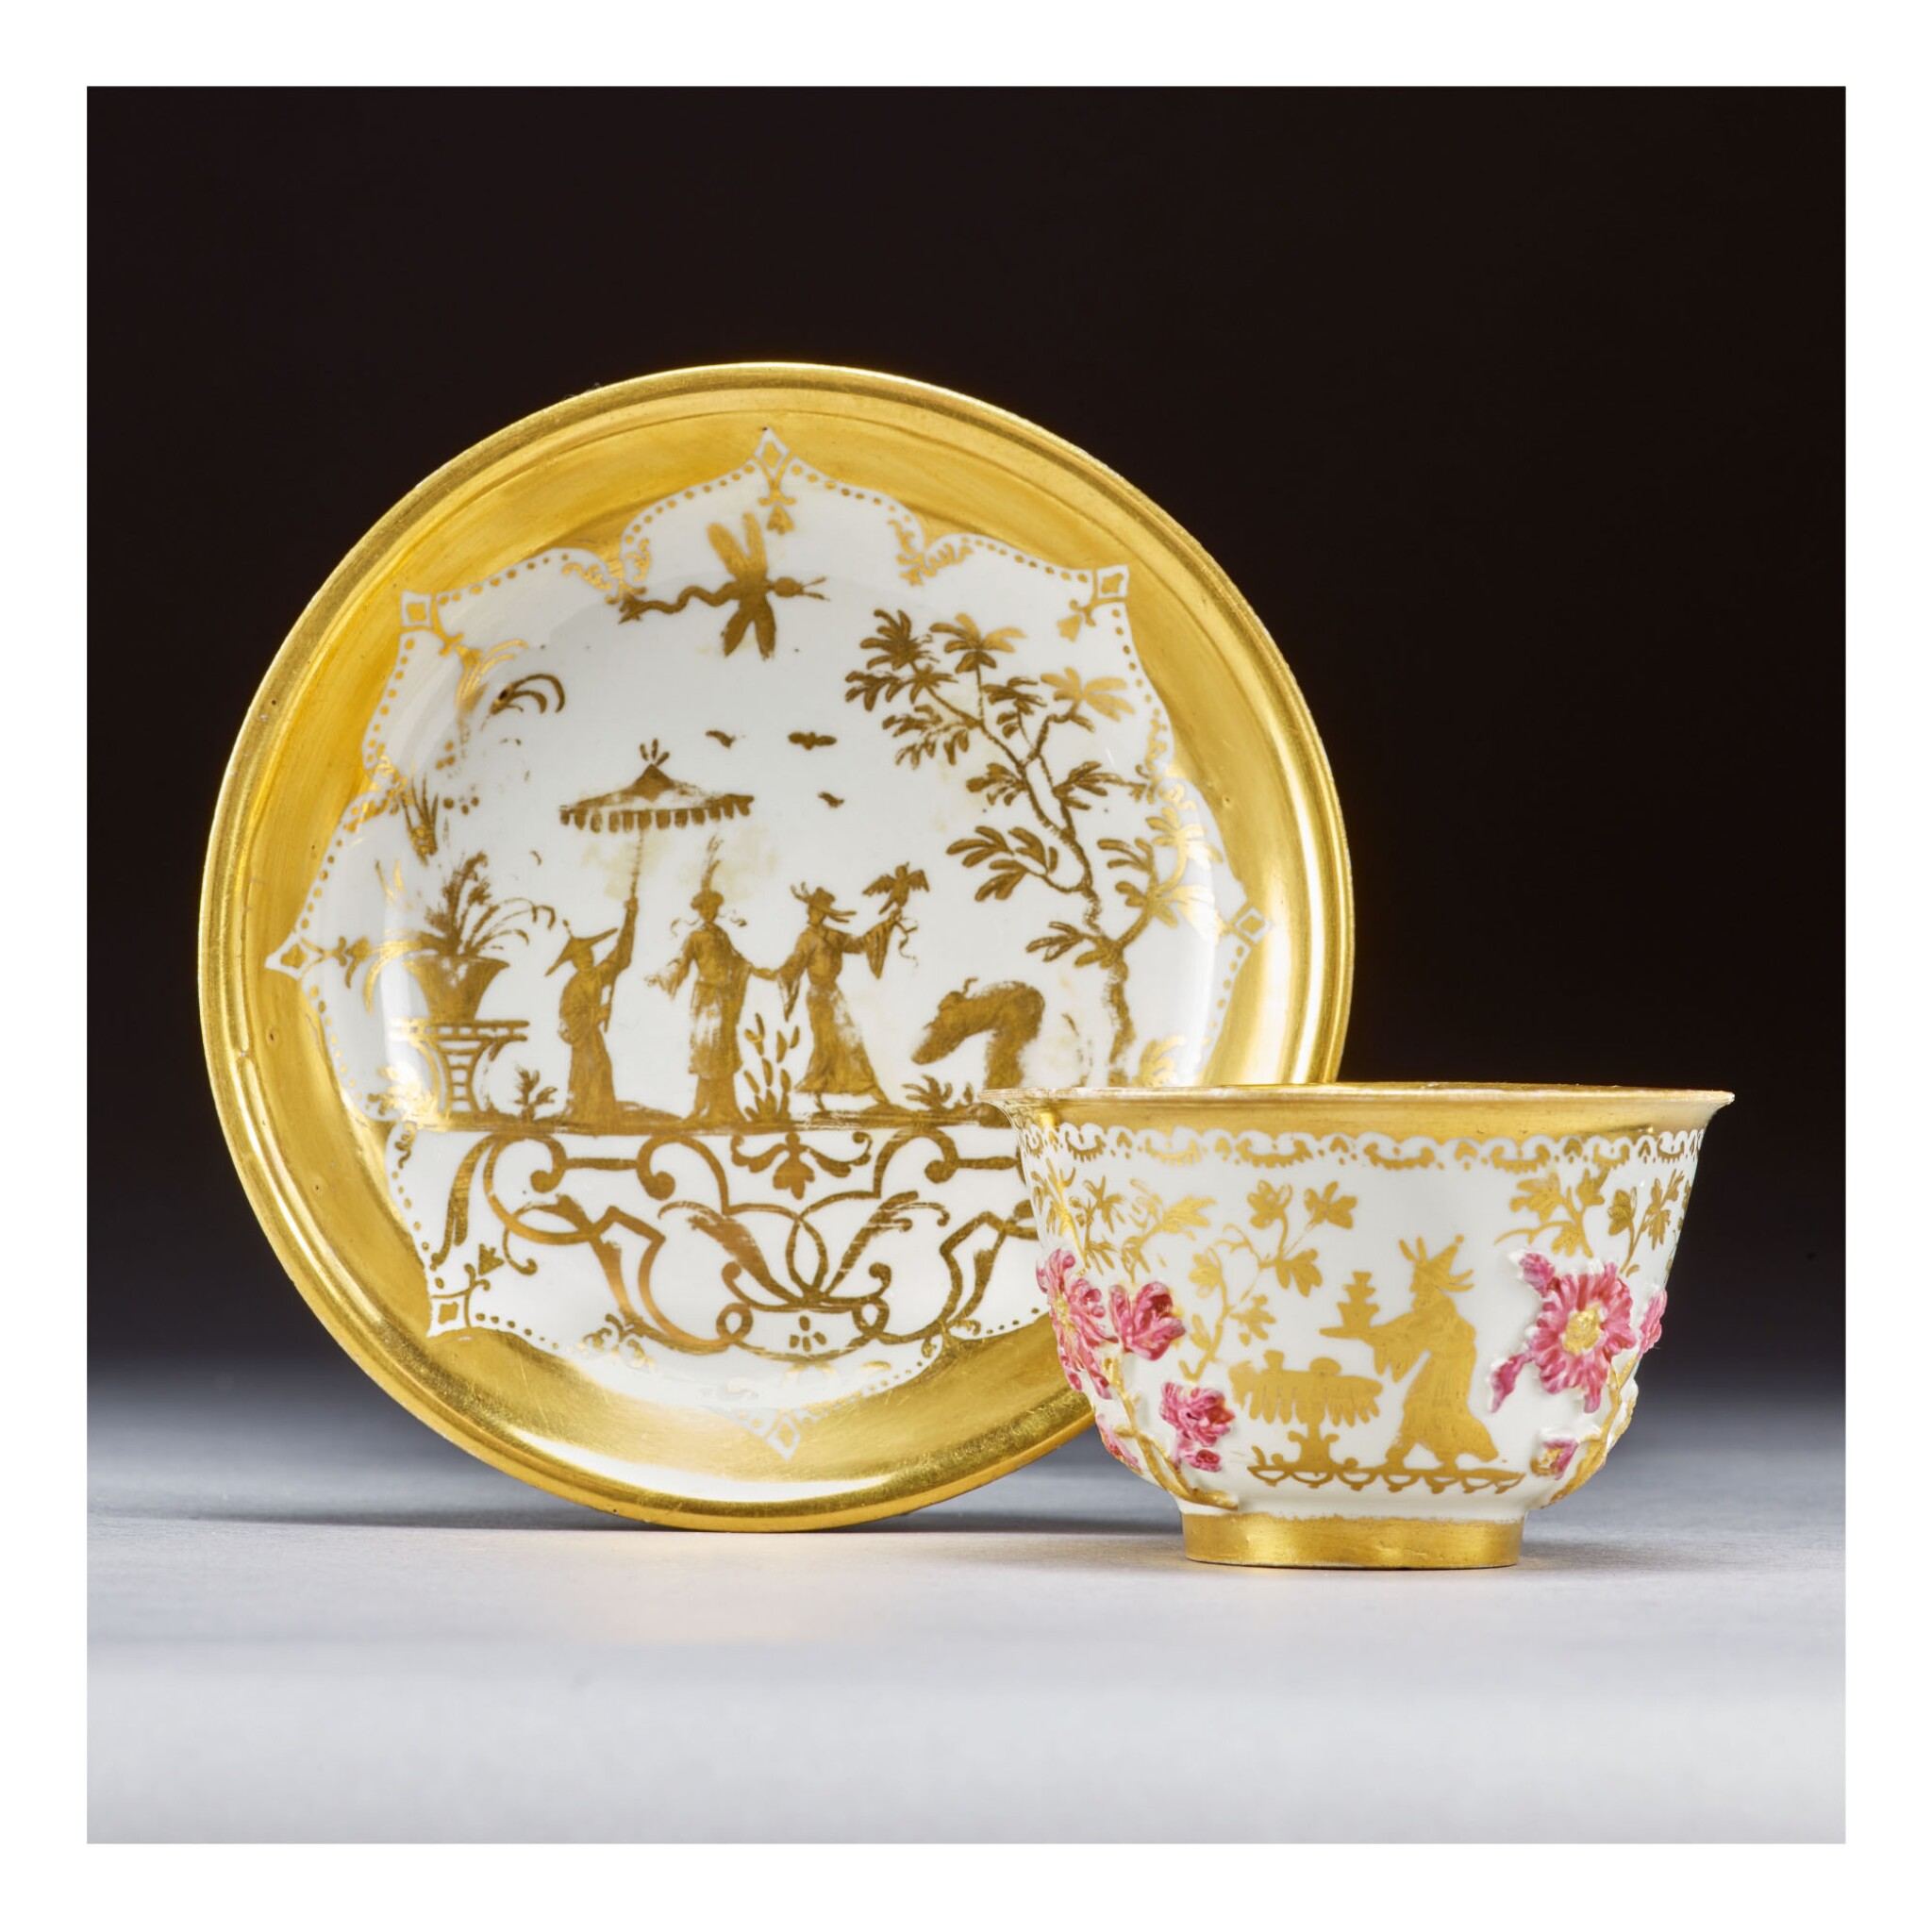 View full screen - View 1 of Lot 455. A MEISSEN HAUSMALER TEABOWL AND SAUCER THE PORCELAIN CIRCA 1715-20, THE DECORATION 1725-30.